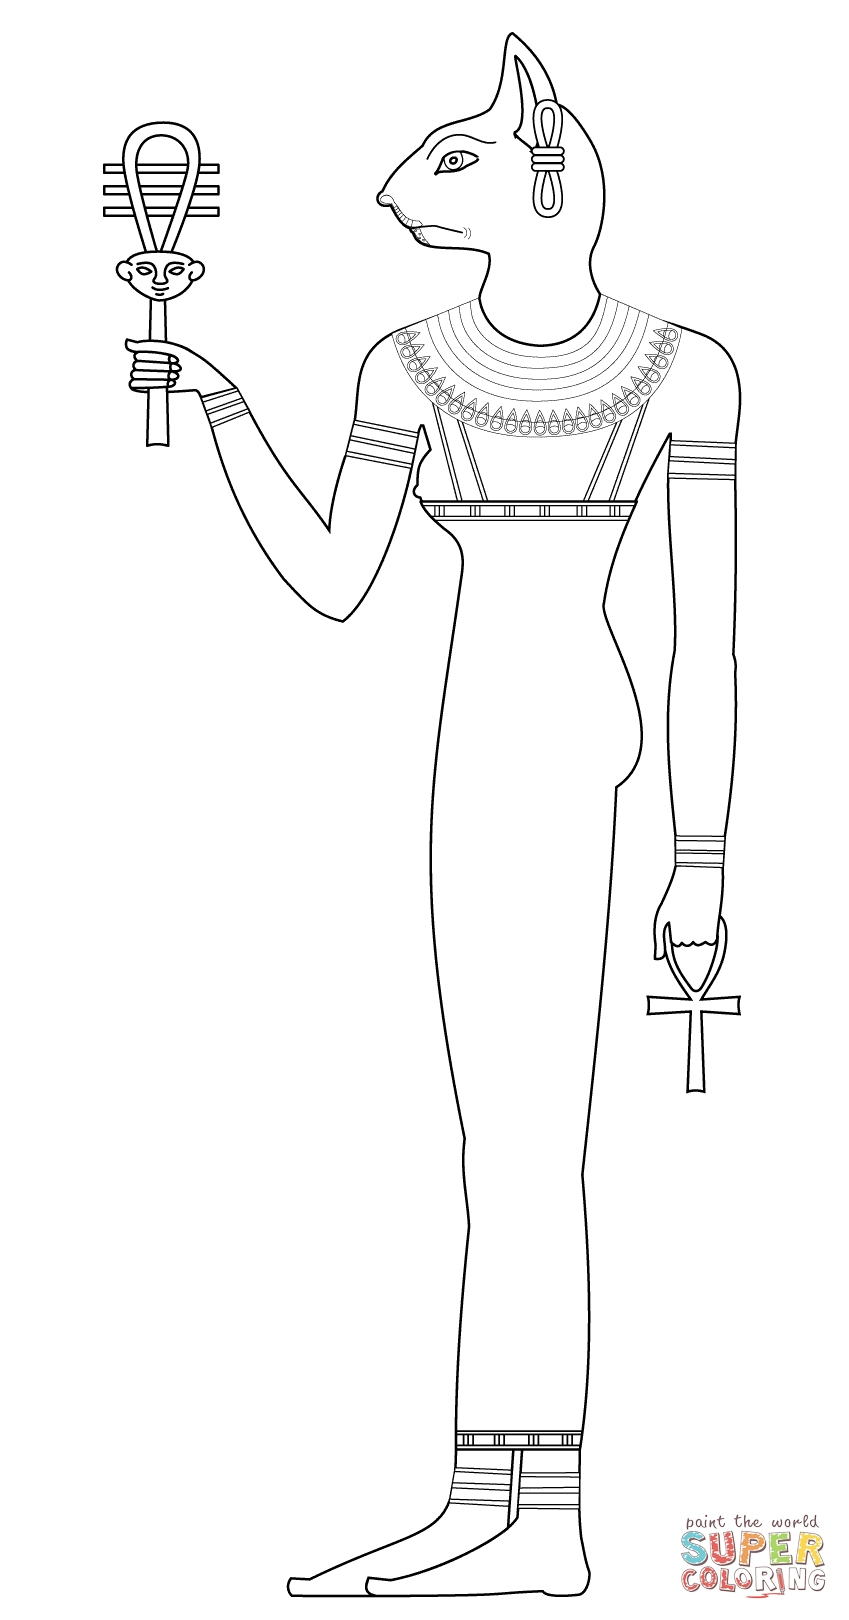 grumpy cat coloring pages - bastet